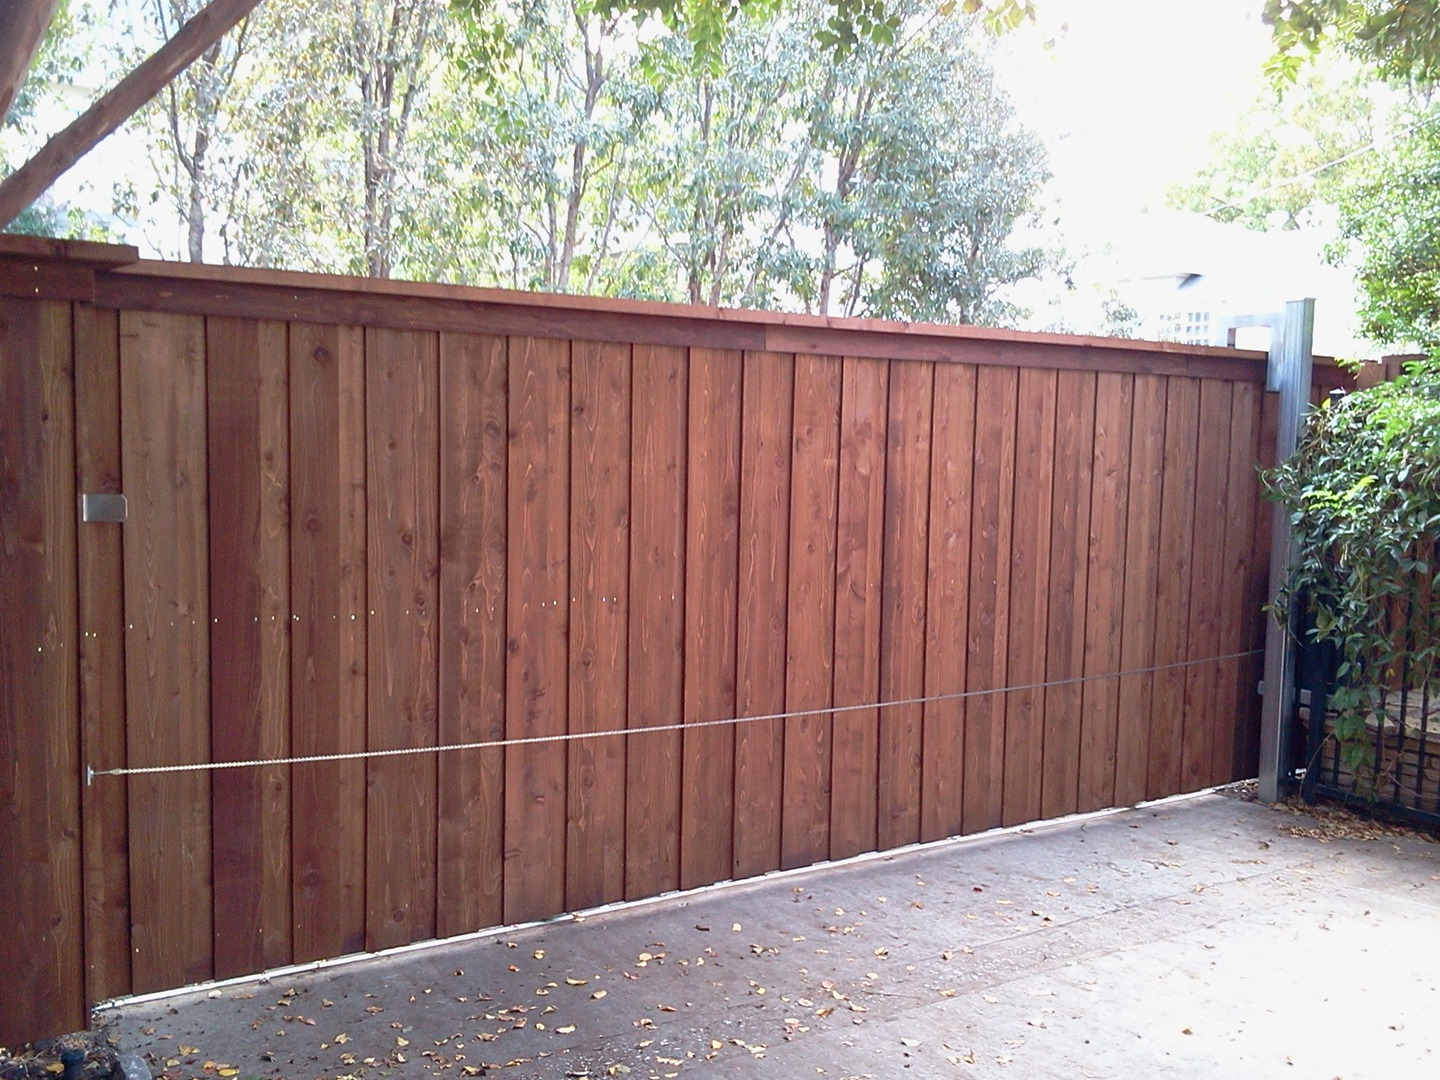 Fence Design Wrought Iron Fence Panels Wholesale Fort Worth intended for size 1440 X 1080